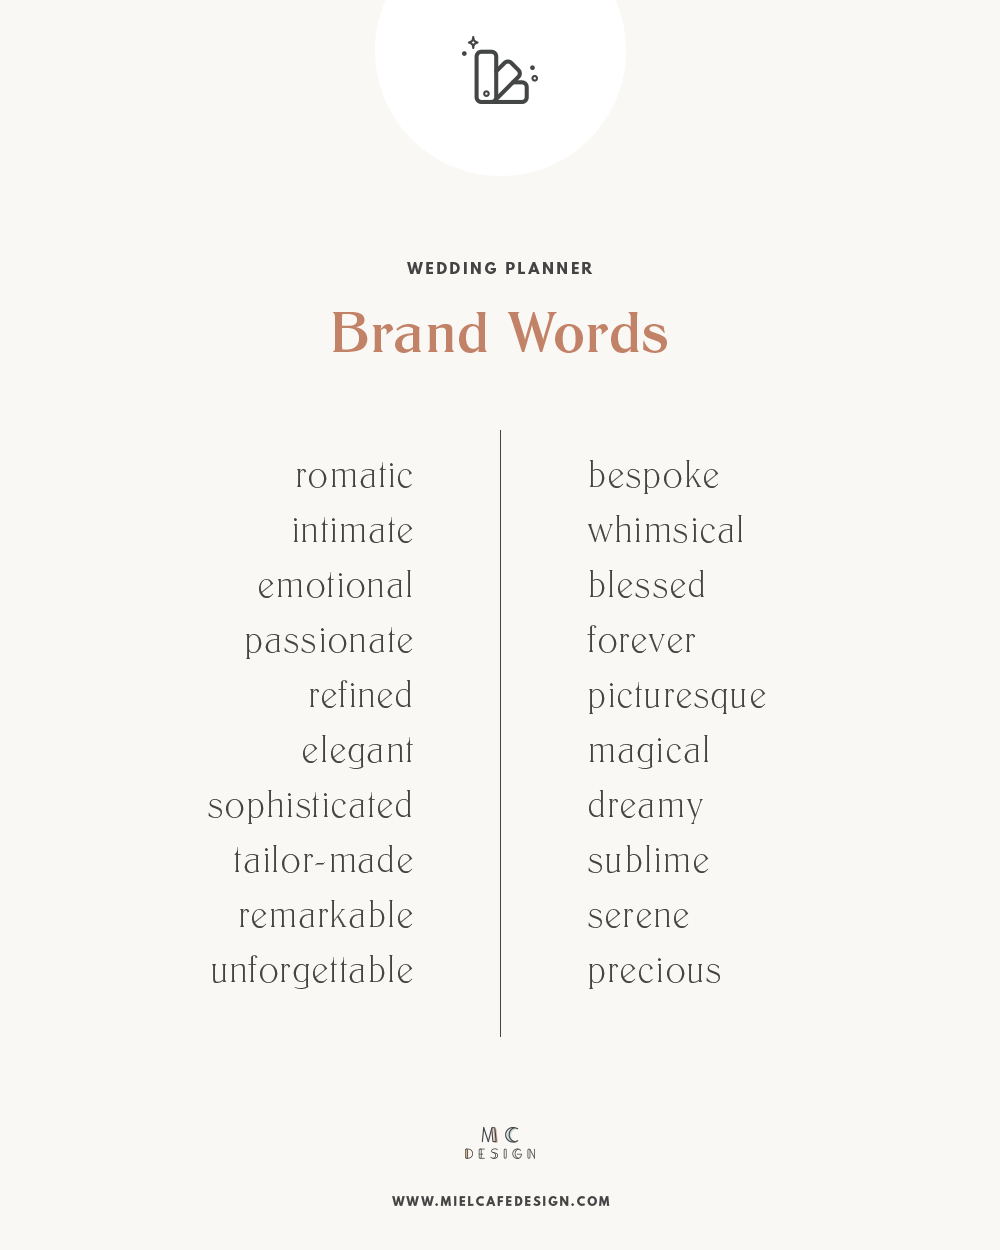 How to create your wedding planner brand: a selection of appropriate brand words for wedding planner brands